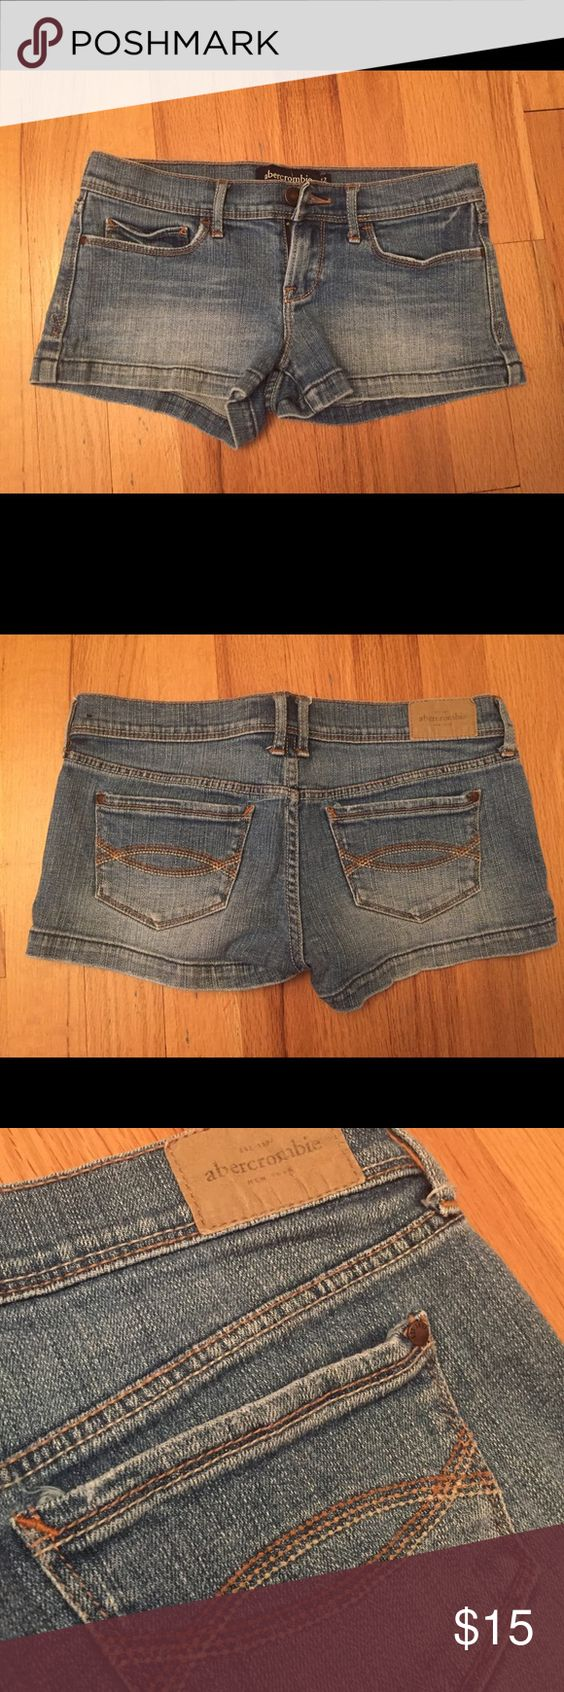 Abercrombie kids jean shorts Abercrombie girls jean shorts. Light wash and in great condition. KIDS SIZE 12 abercrombie kids Shorts Jean Shorts